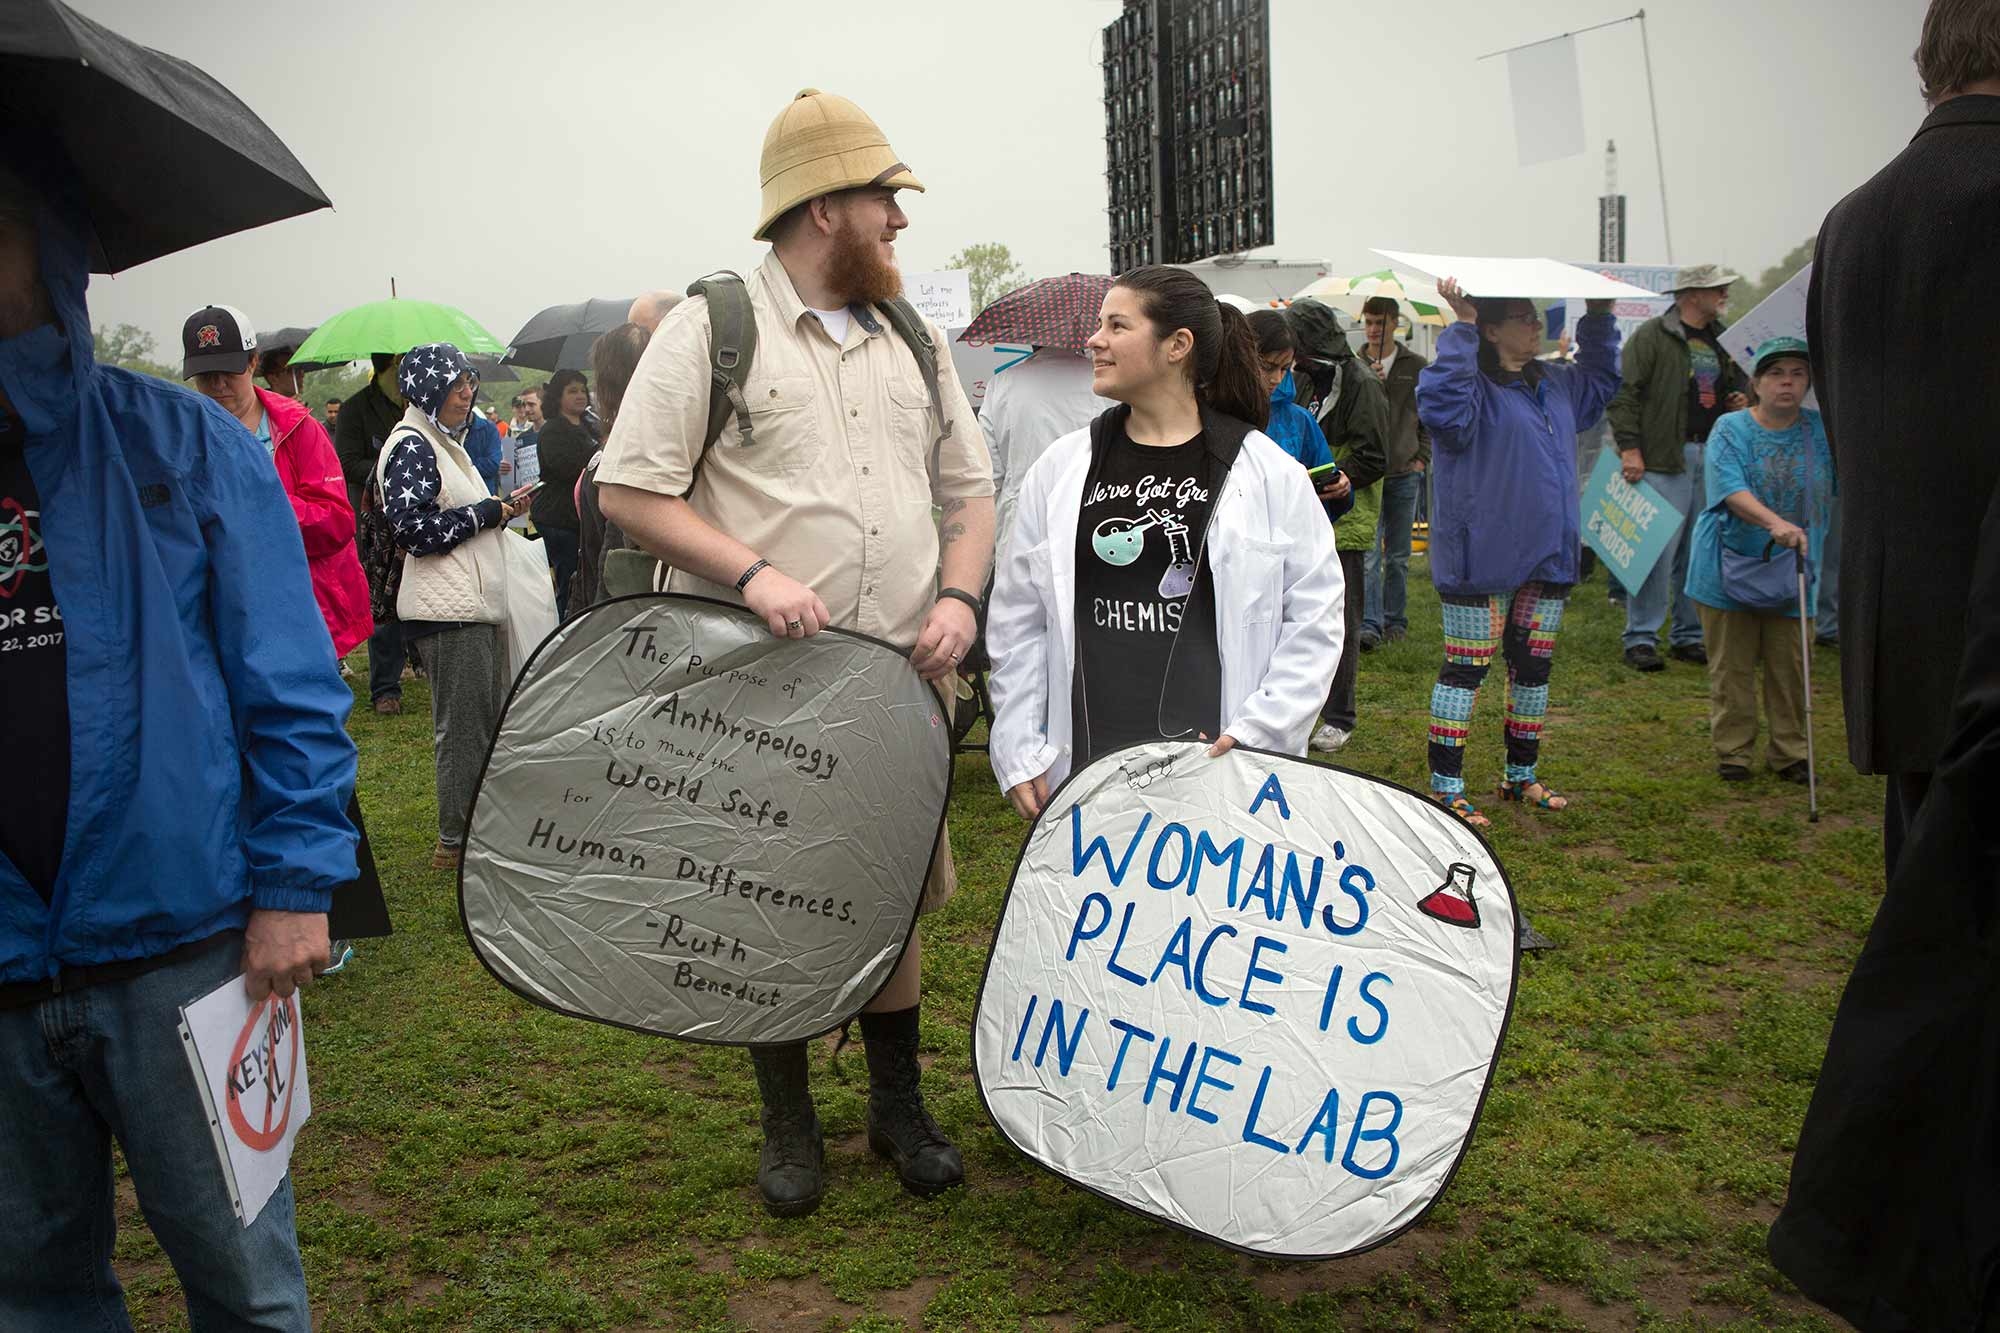 """A woman's place is in the lab,"" reads a sign at the science march in Washington, DC."